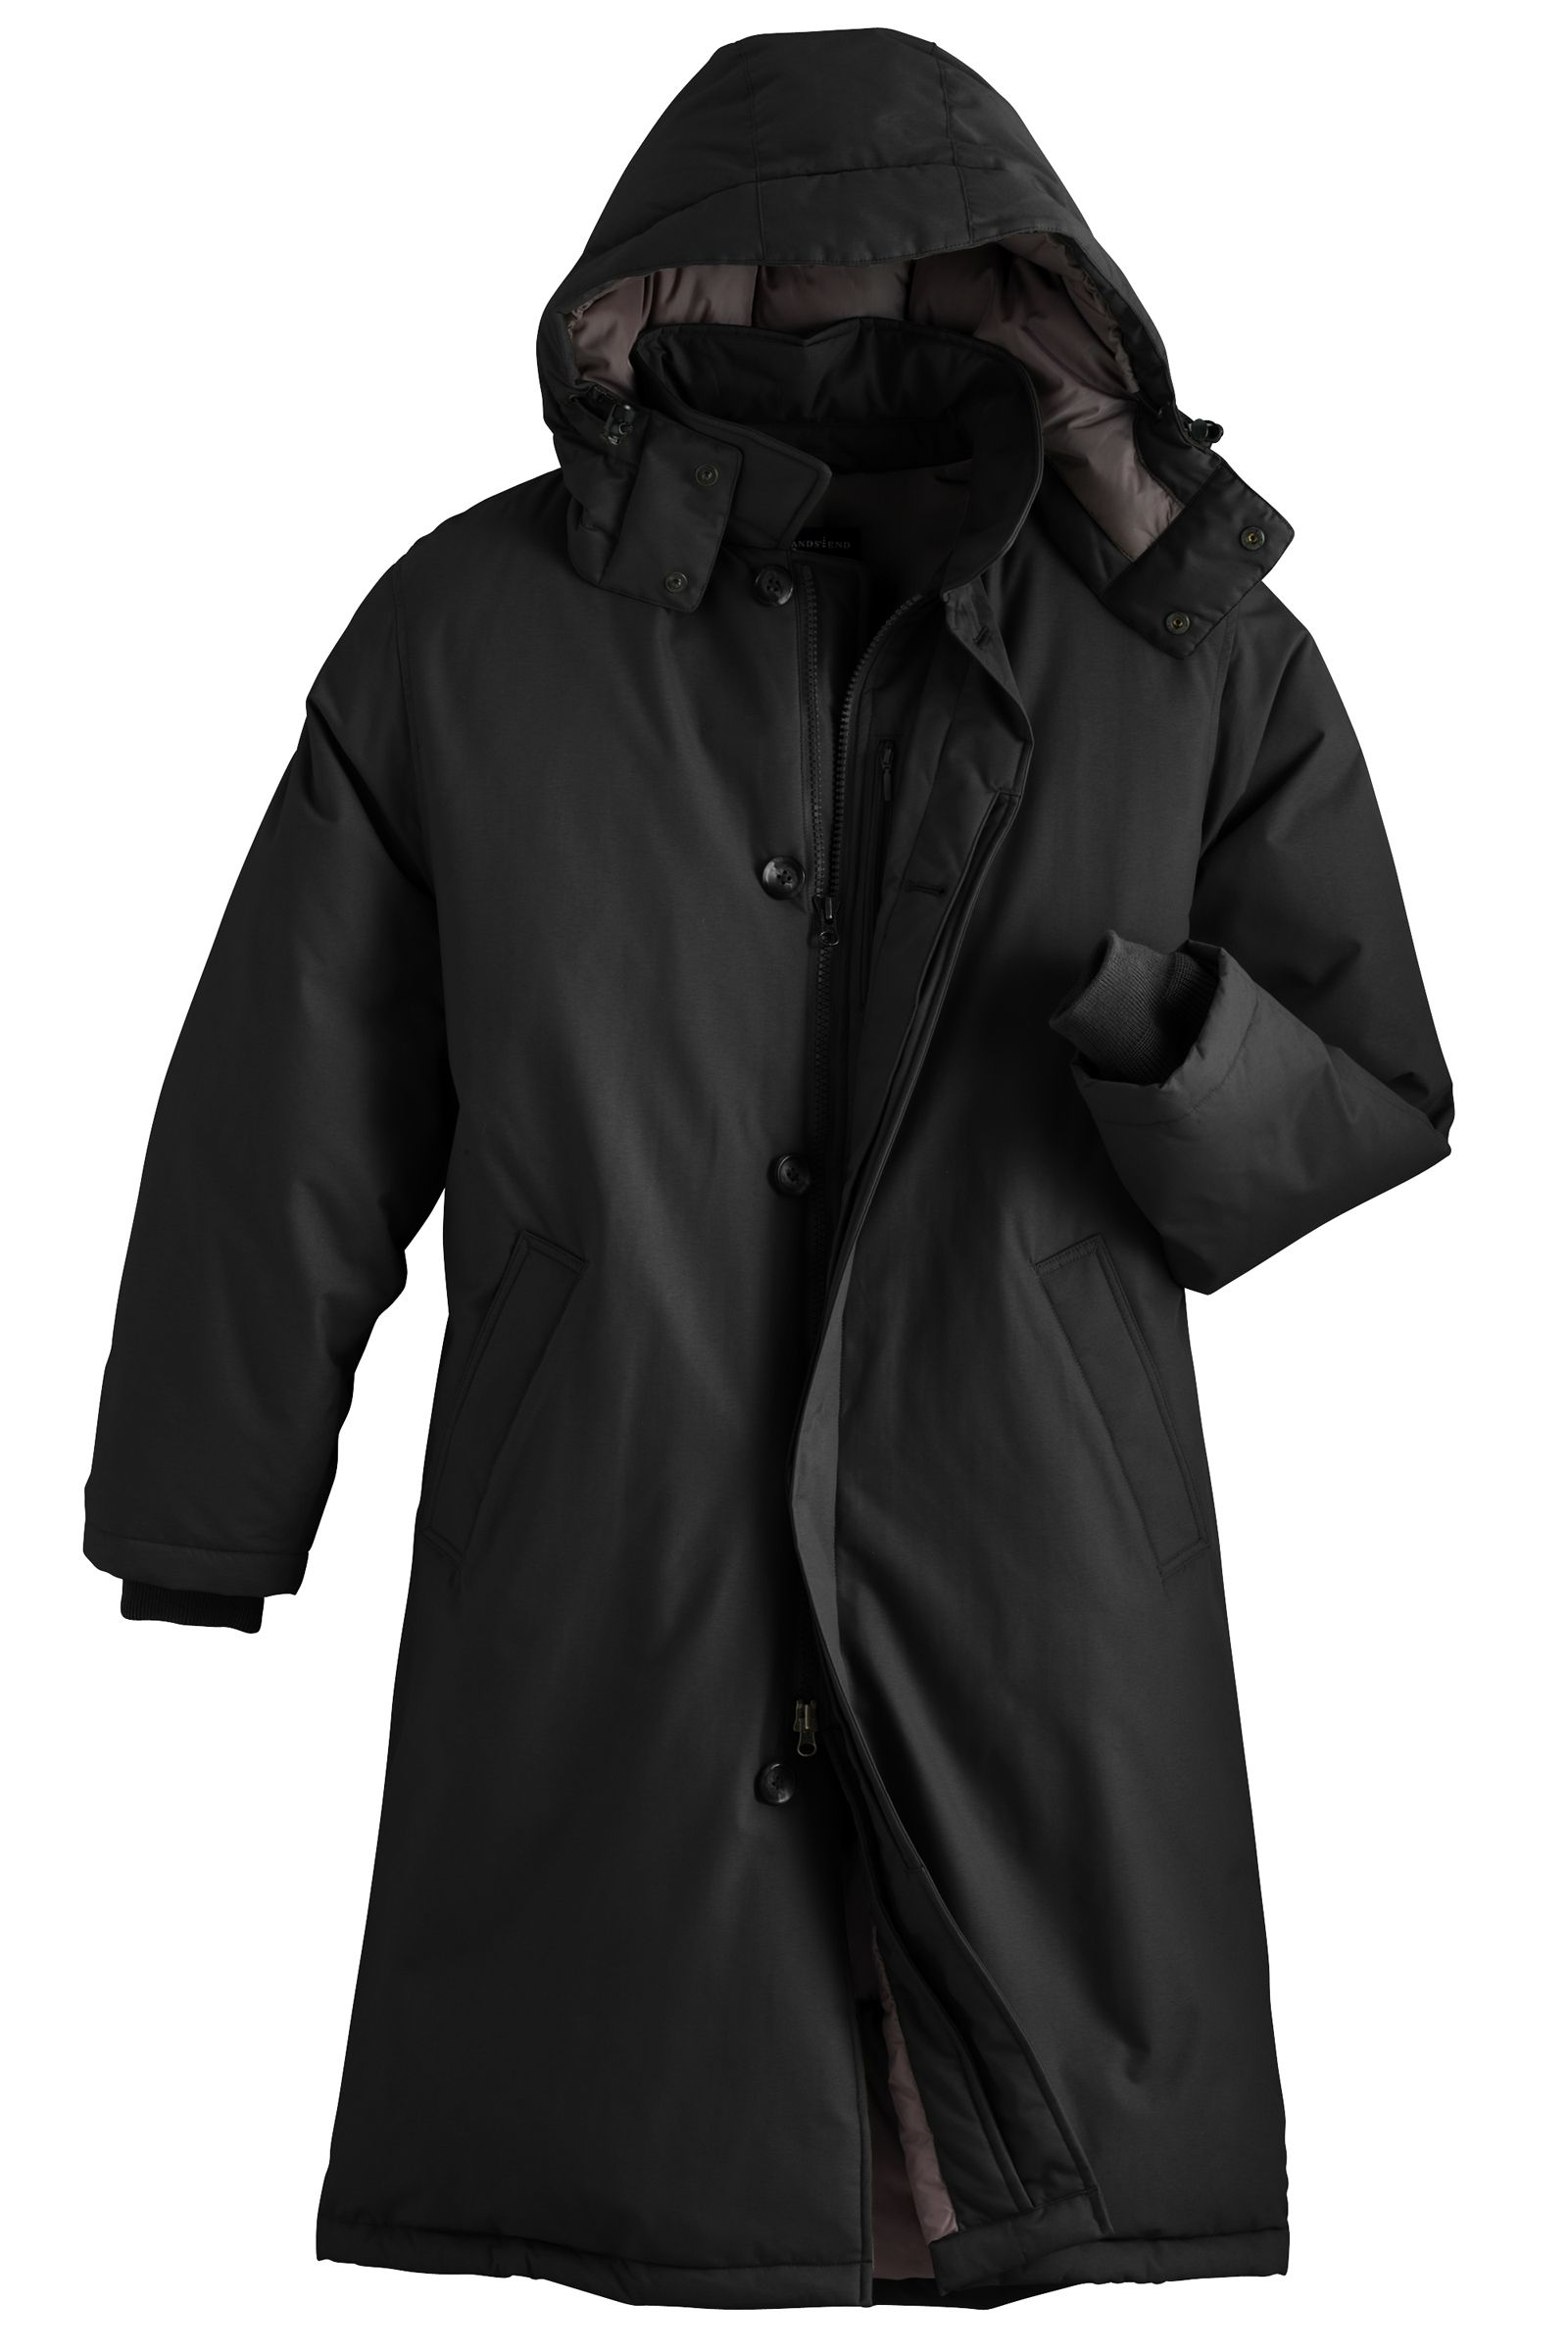 I have a Lands End puffer from several seasons ago. It's more of a parka and pretty haerdcore and have to say it's been a great purchase. LE can be mixed on quality but their more functional outerwear has always been pretty good.